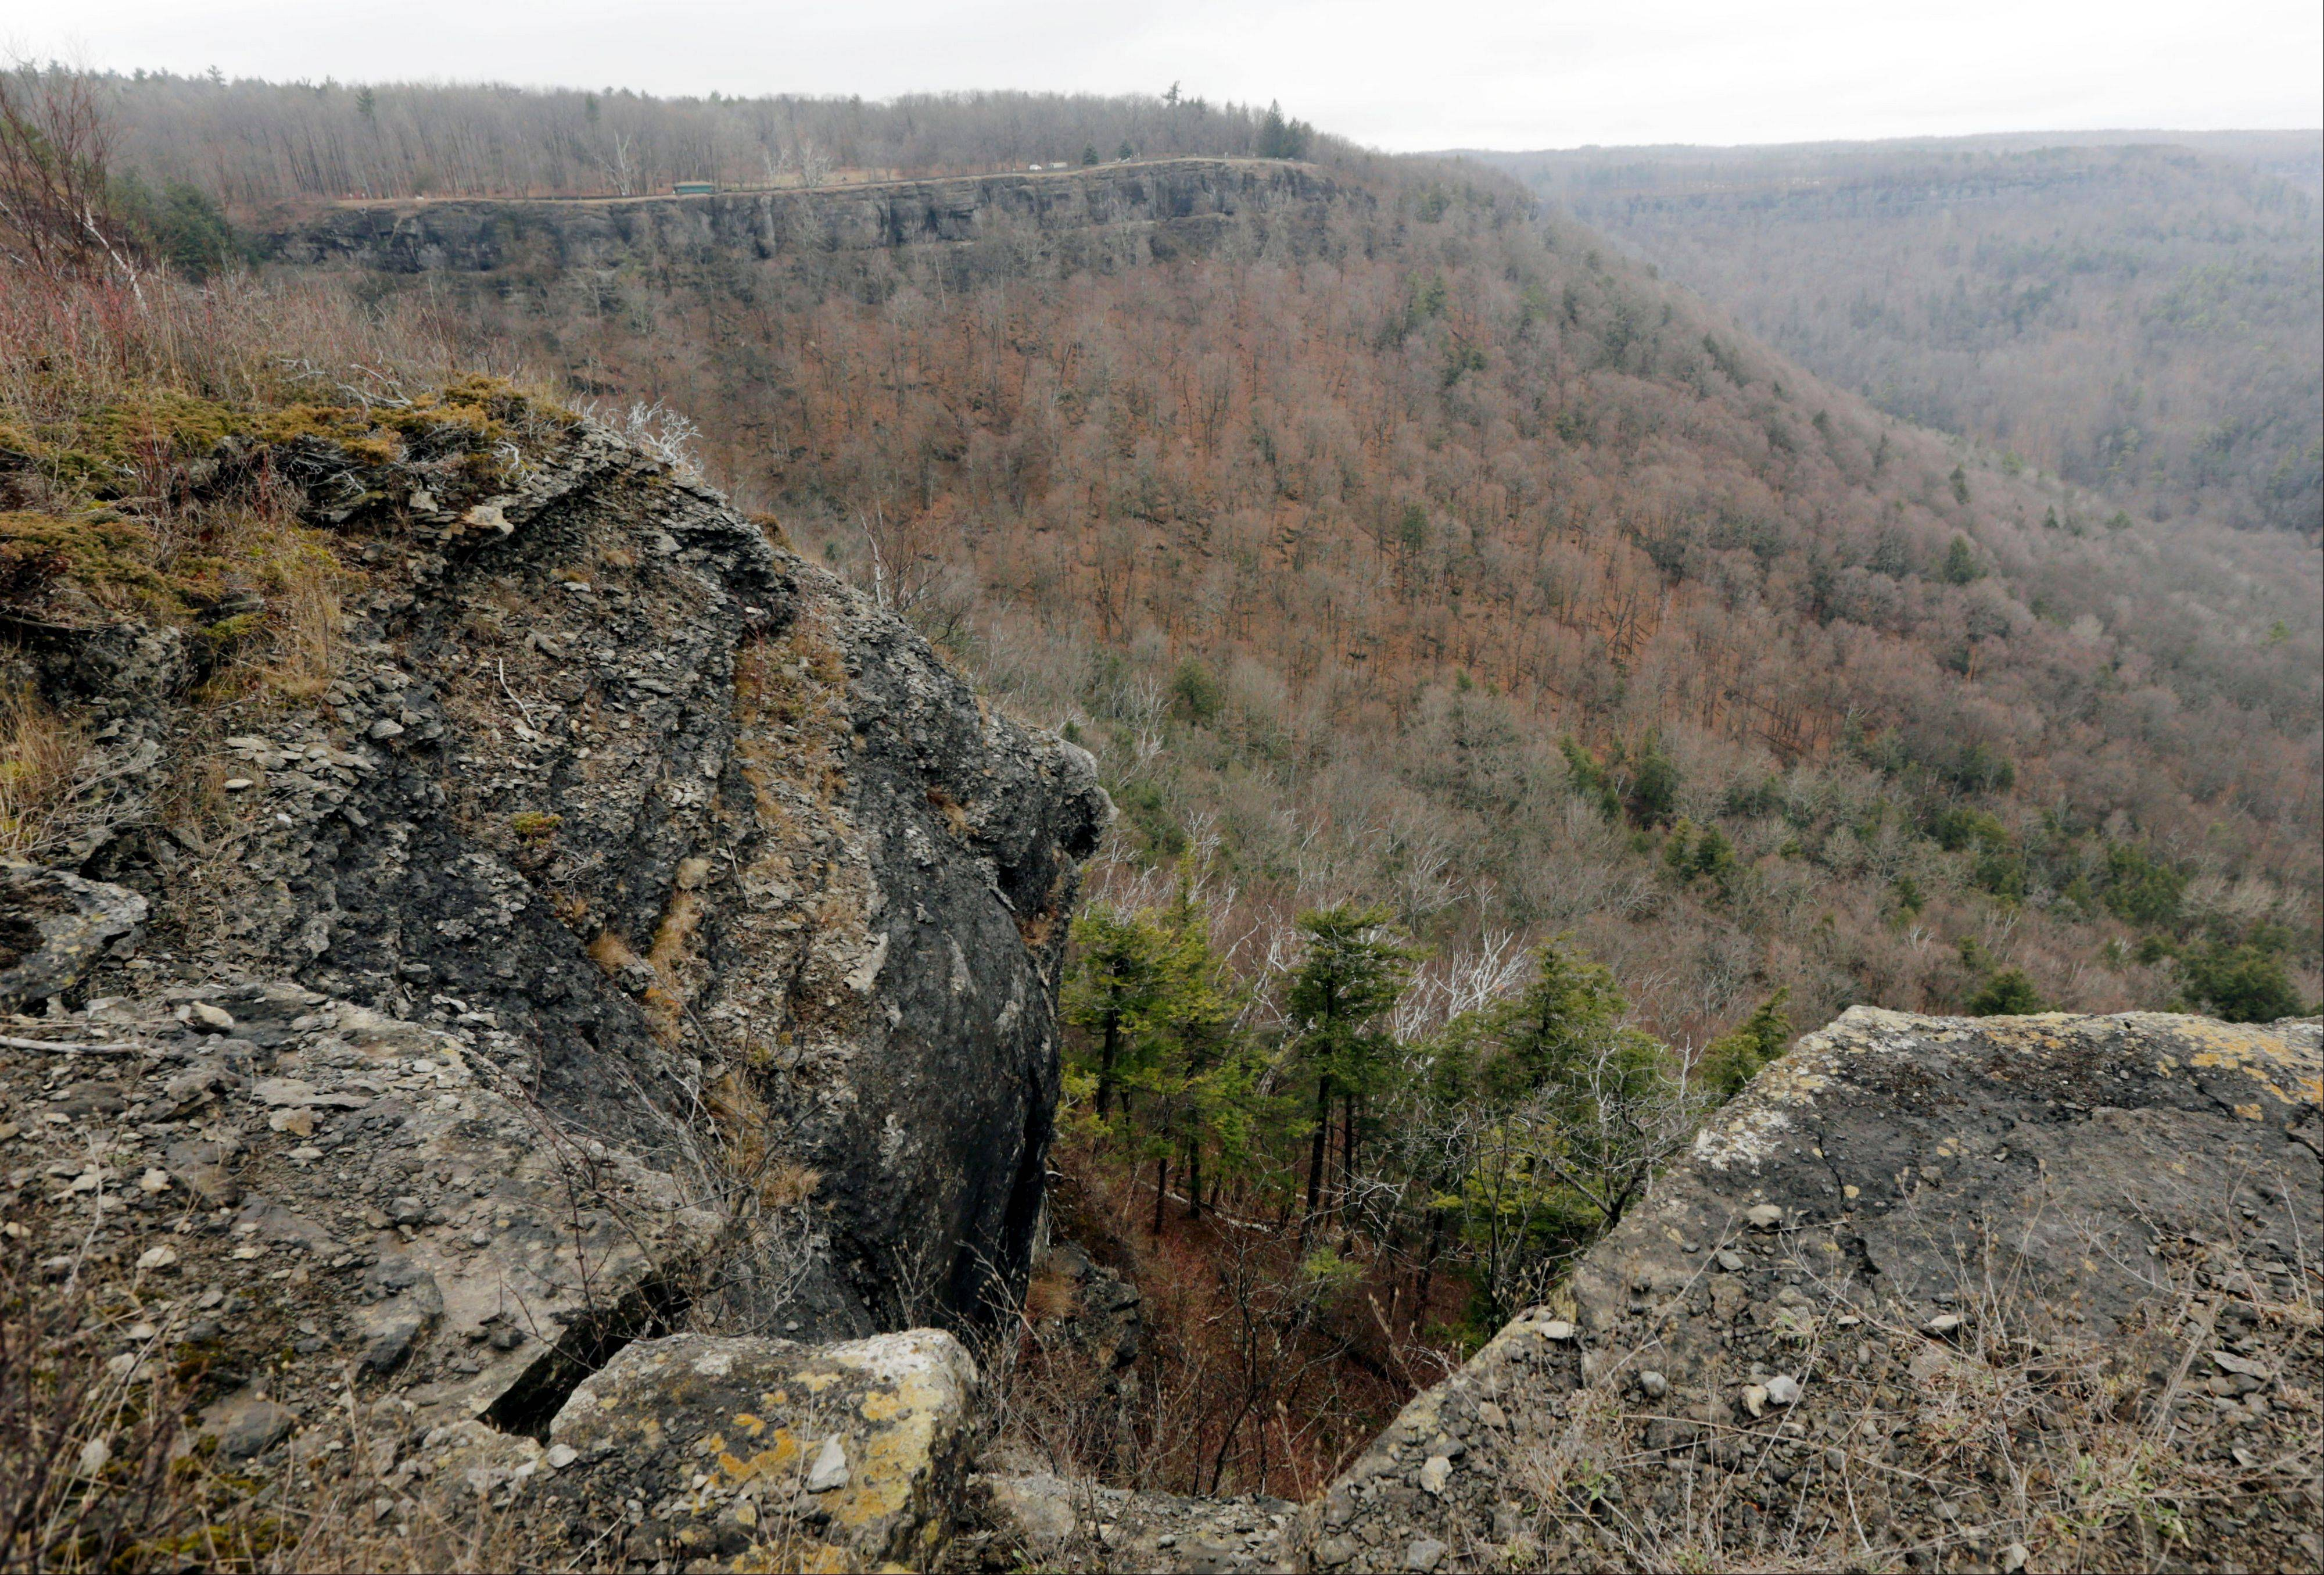 The Glen Doone picnic area at John Boyd Thacher State Park offers spectacular views.